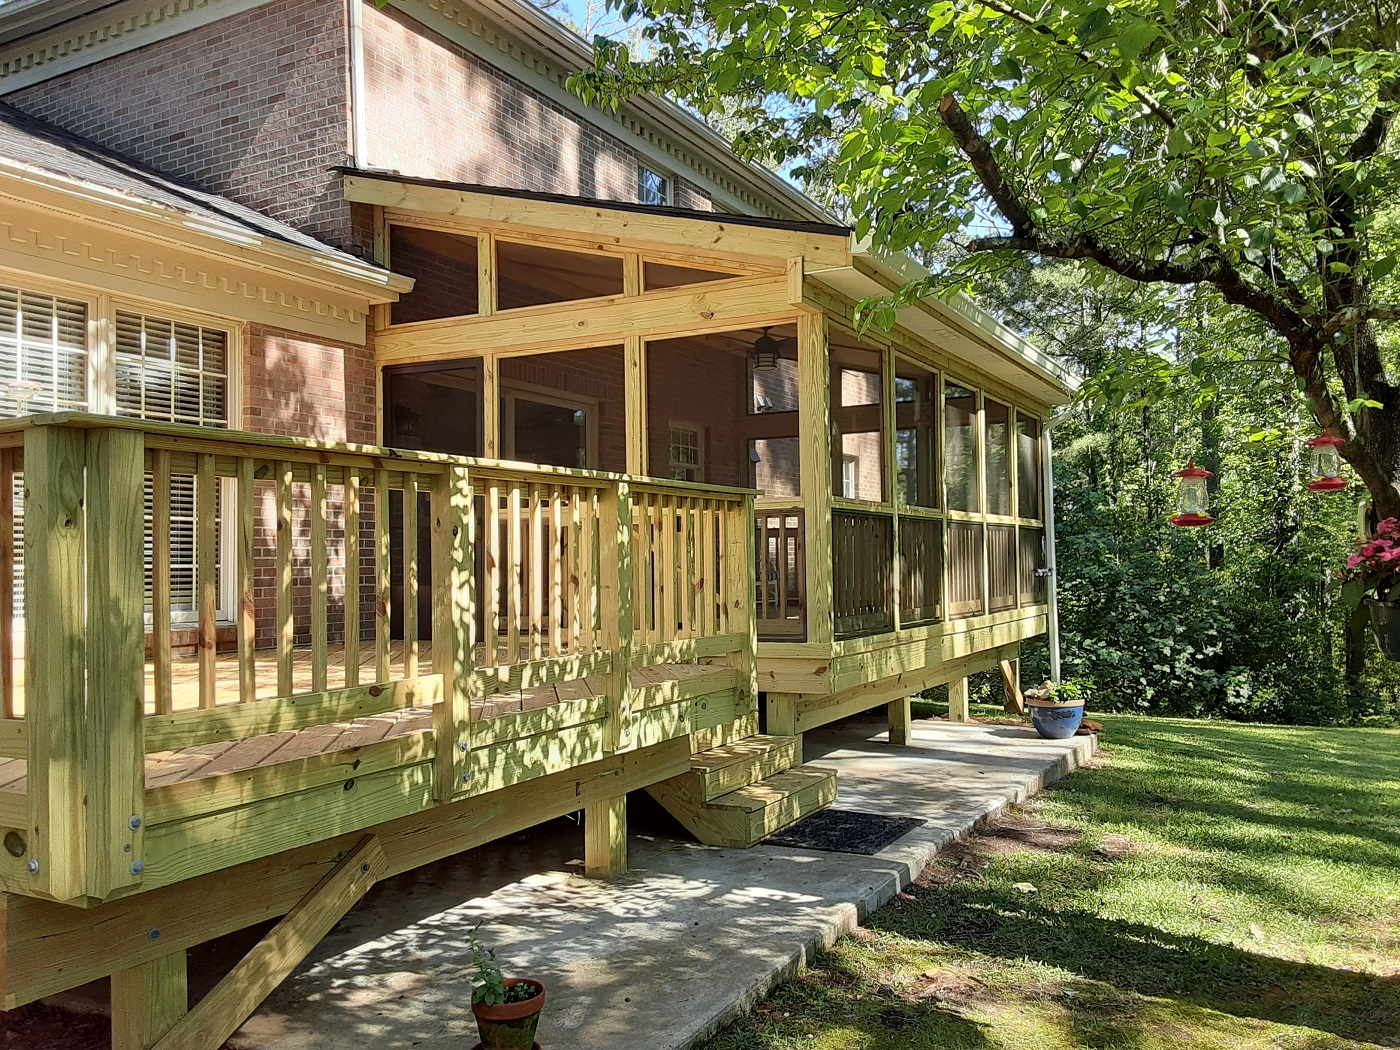 These-River-North-homeowners-are-loving-their-new-deck-and-porch